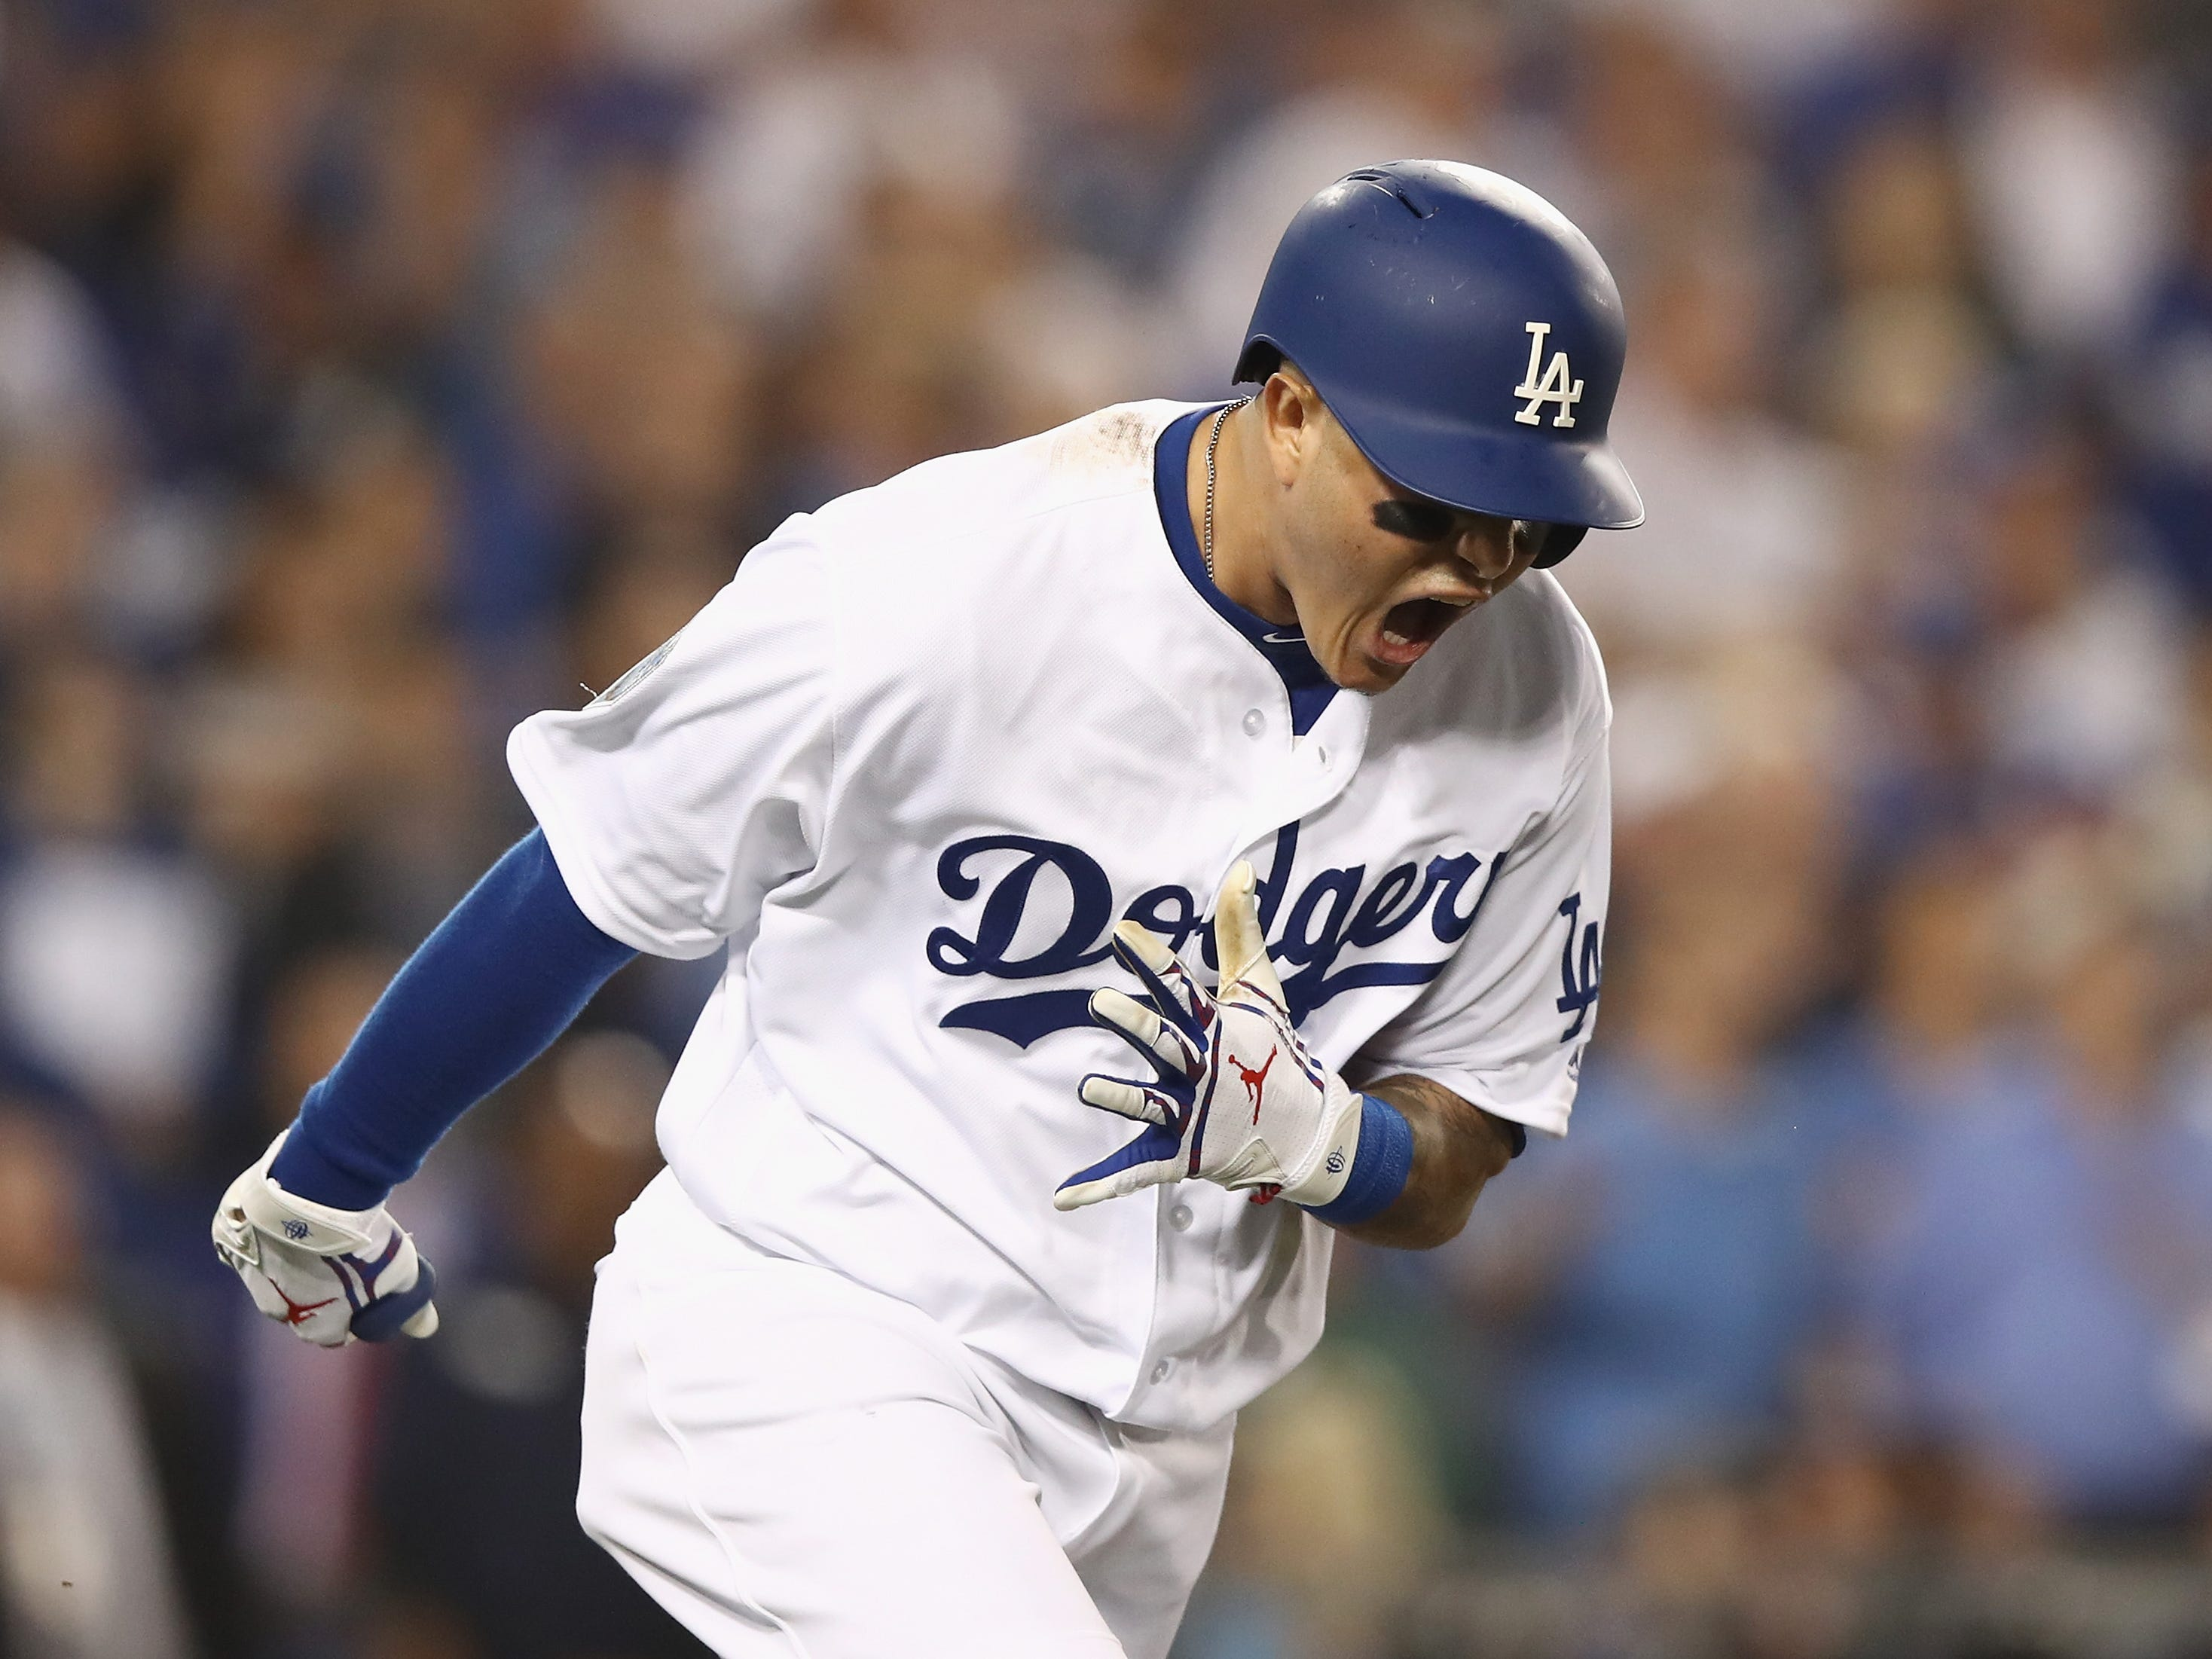 1. Manny Machado, SS/3B, 26: You could go flop 1 and 2 (Bryce Harper) rather easily, but given the positions he can play, Machado is just a notch above and is headed for a massive payday, provided there's at least one team that looks past his perceived disinterest at times during his stint with the Dodgers. Prediction: Yankees, eight years, $242 million